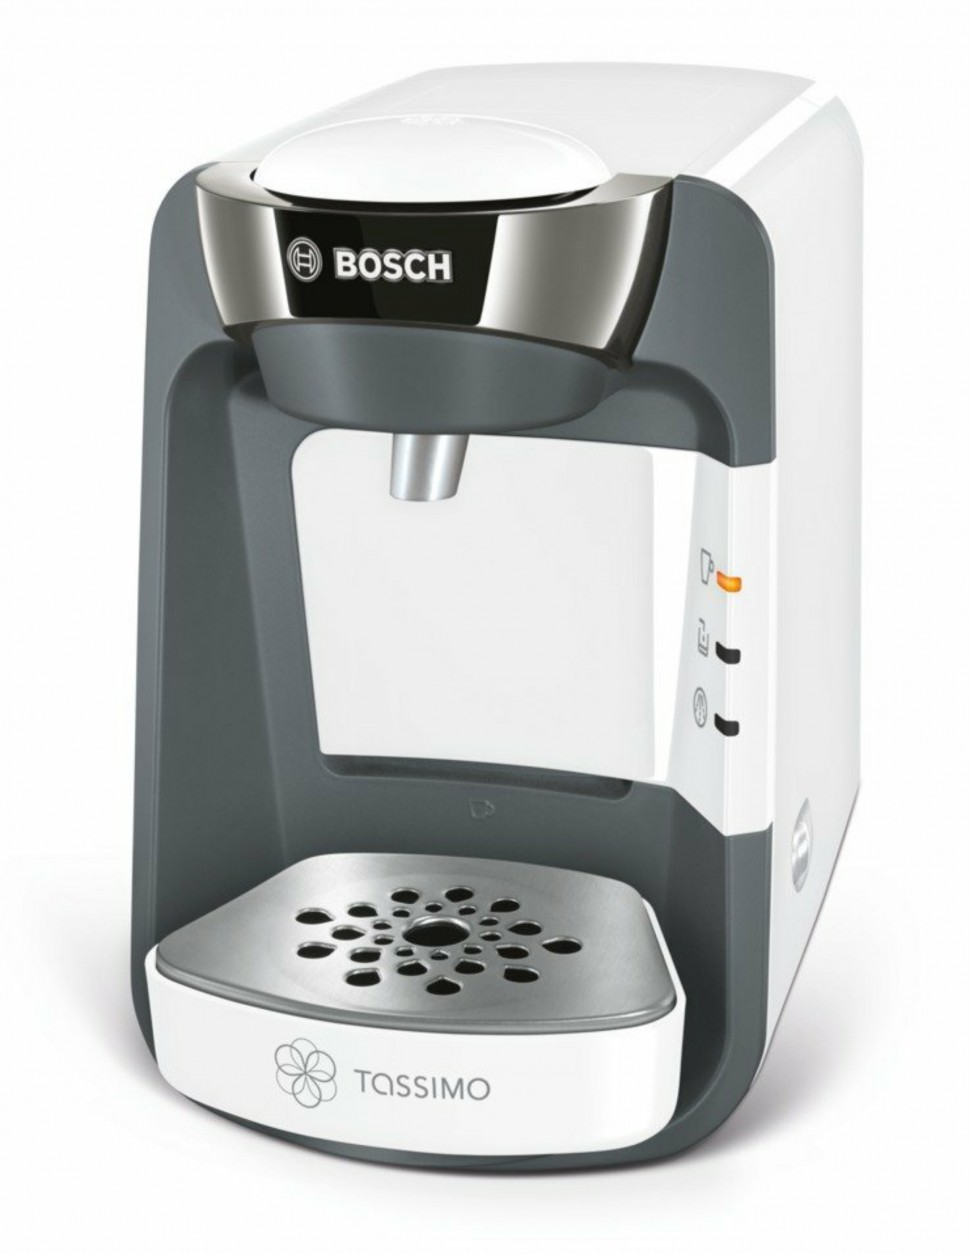 bosch tas3204 tassimo suny capsule coffee pad machine coconut white genuine new ebay. Black Bedroom Furniture Sets. Home Design Ideas